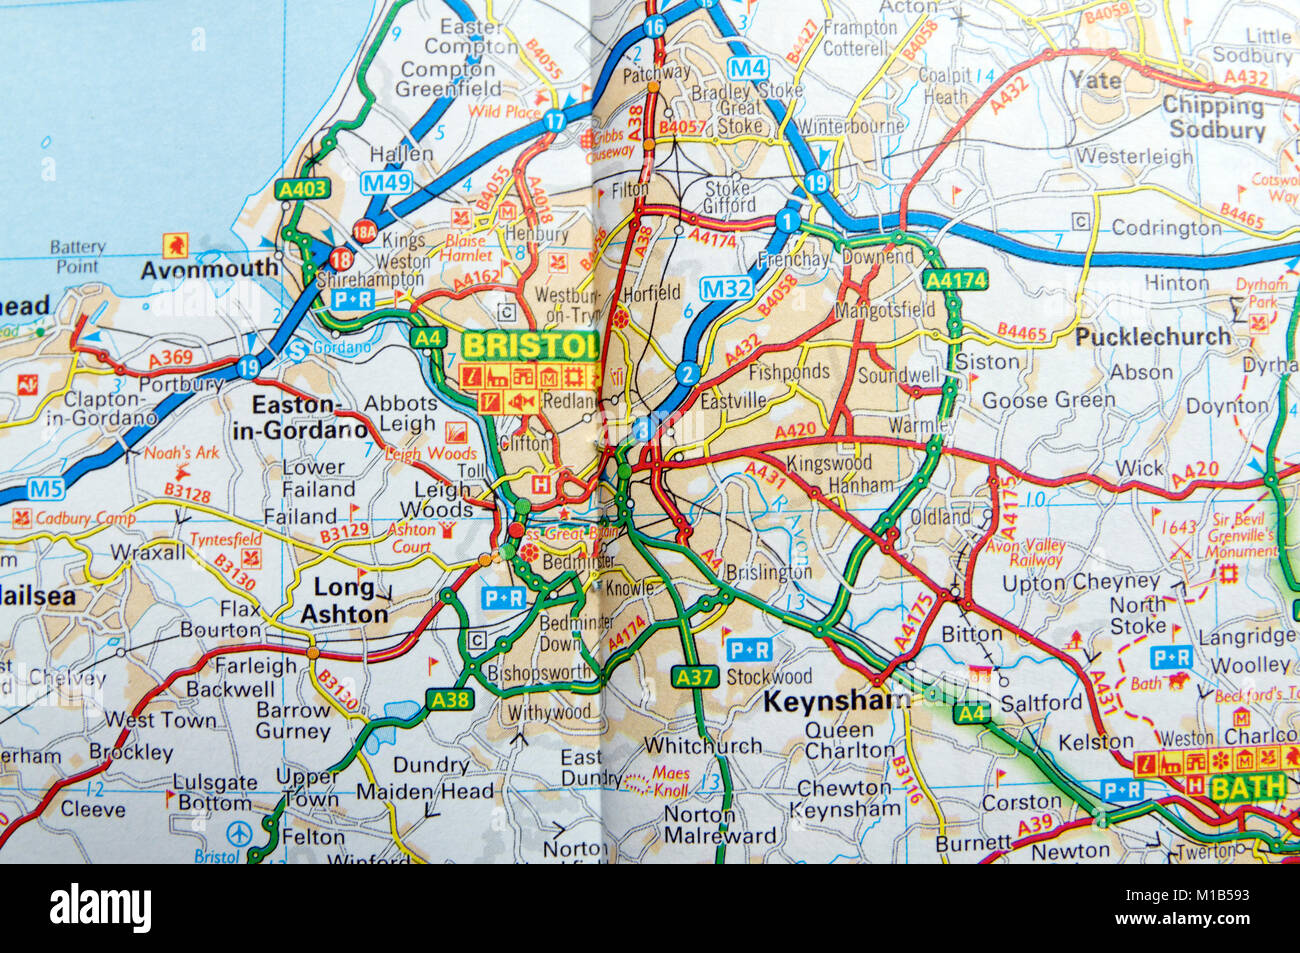 Bristol On The Map Of England.Road Map Of Bristol England Stock Photo 172963983 Alamy